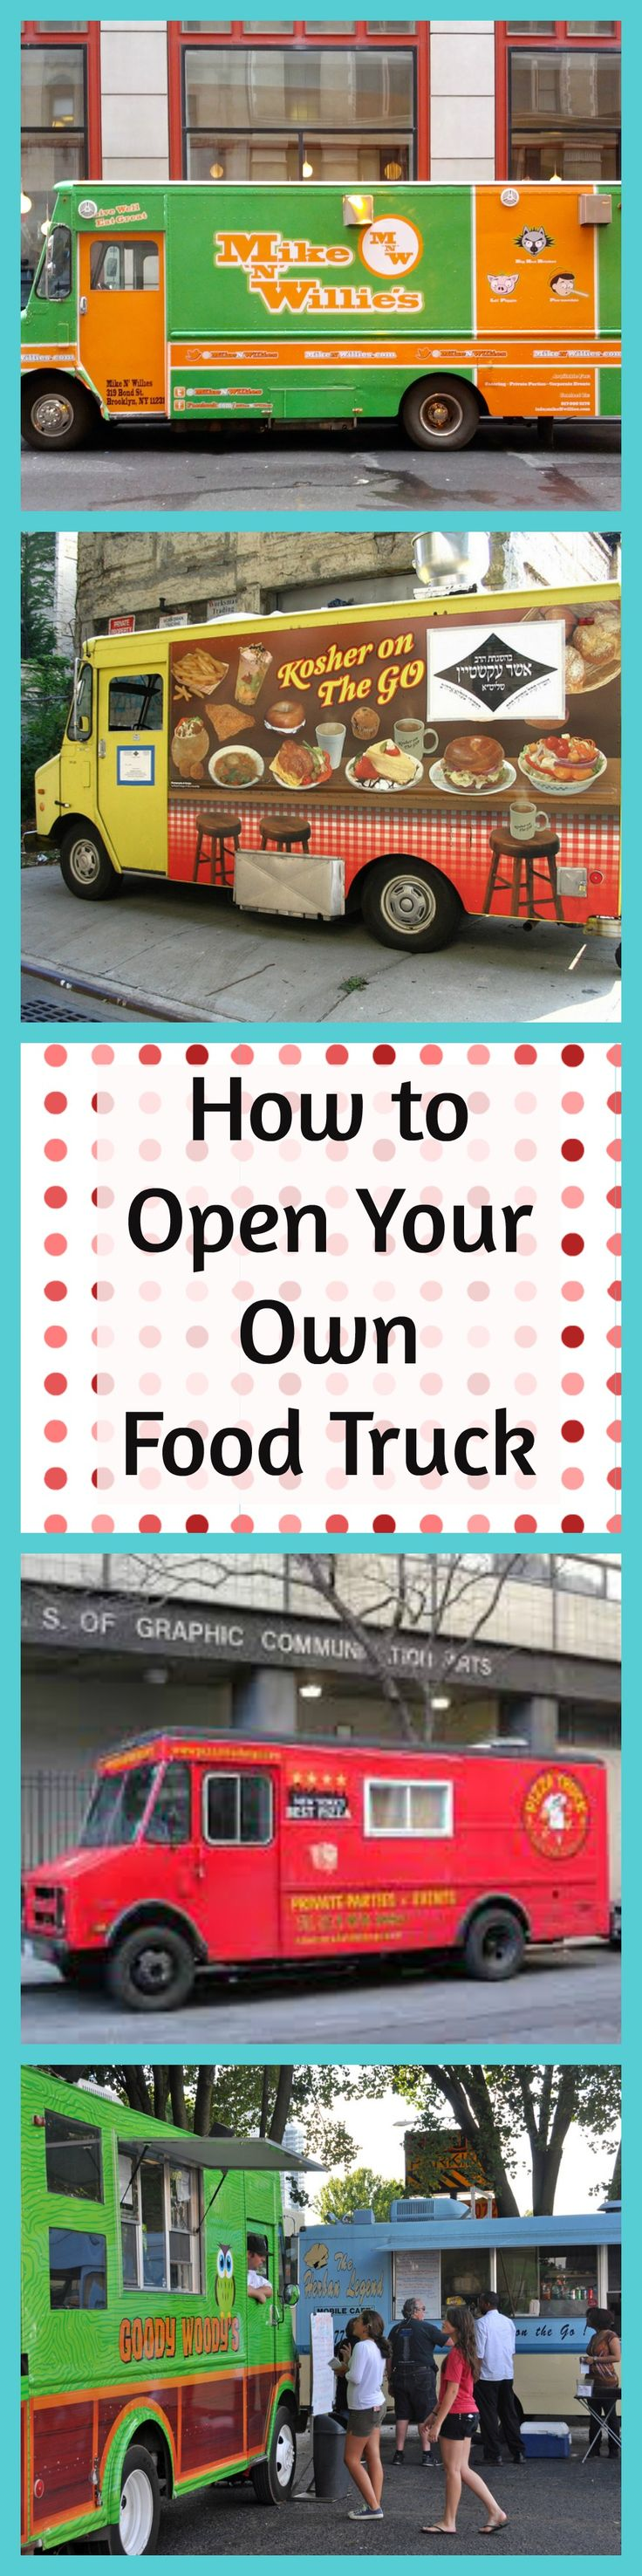 Everything you need to know about opening your own food truck.